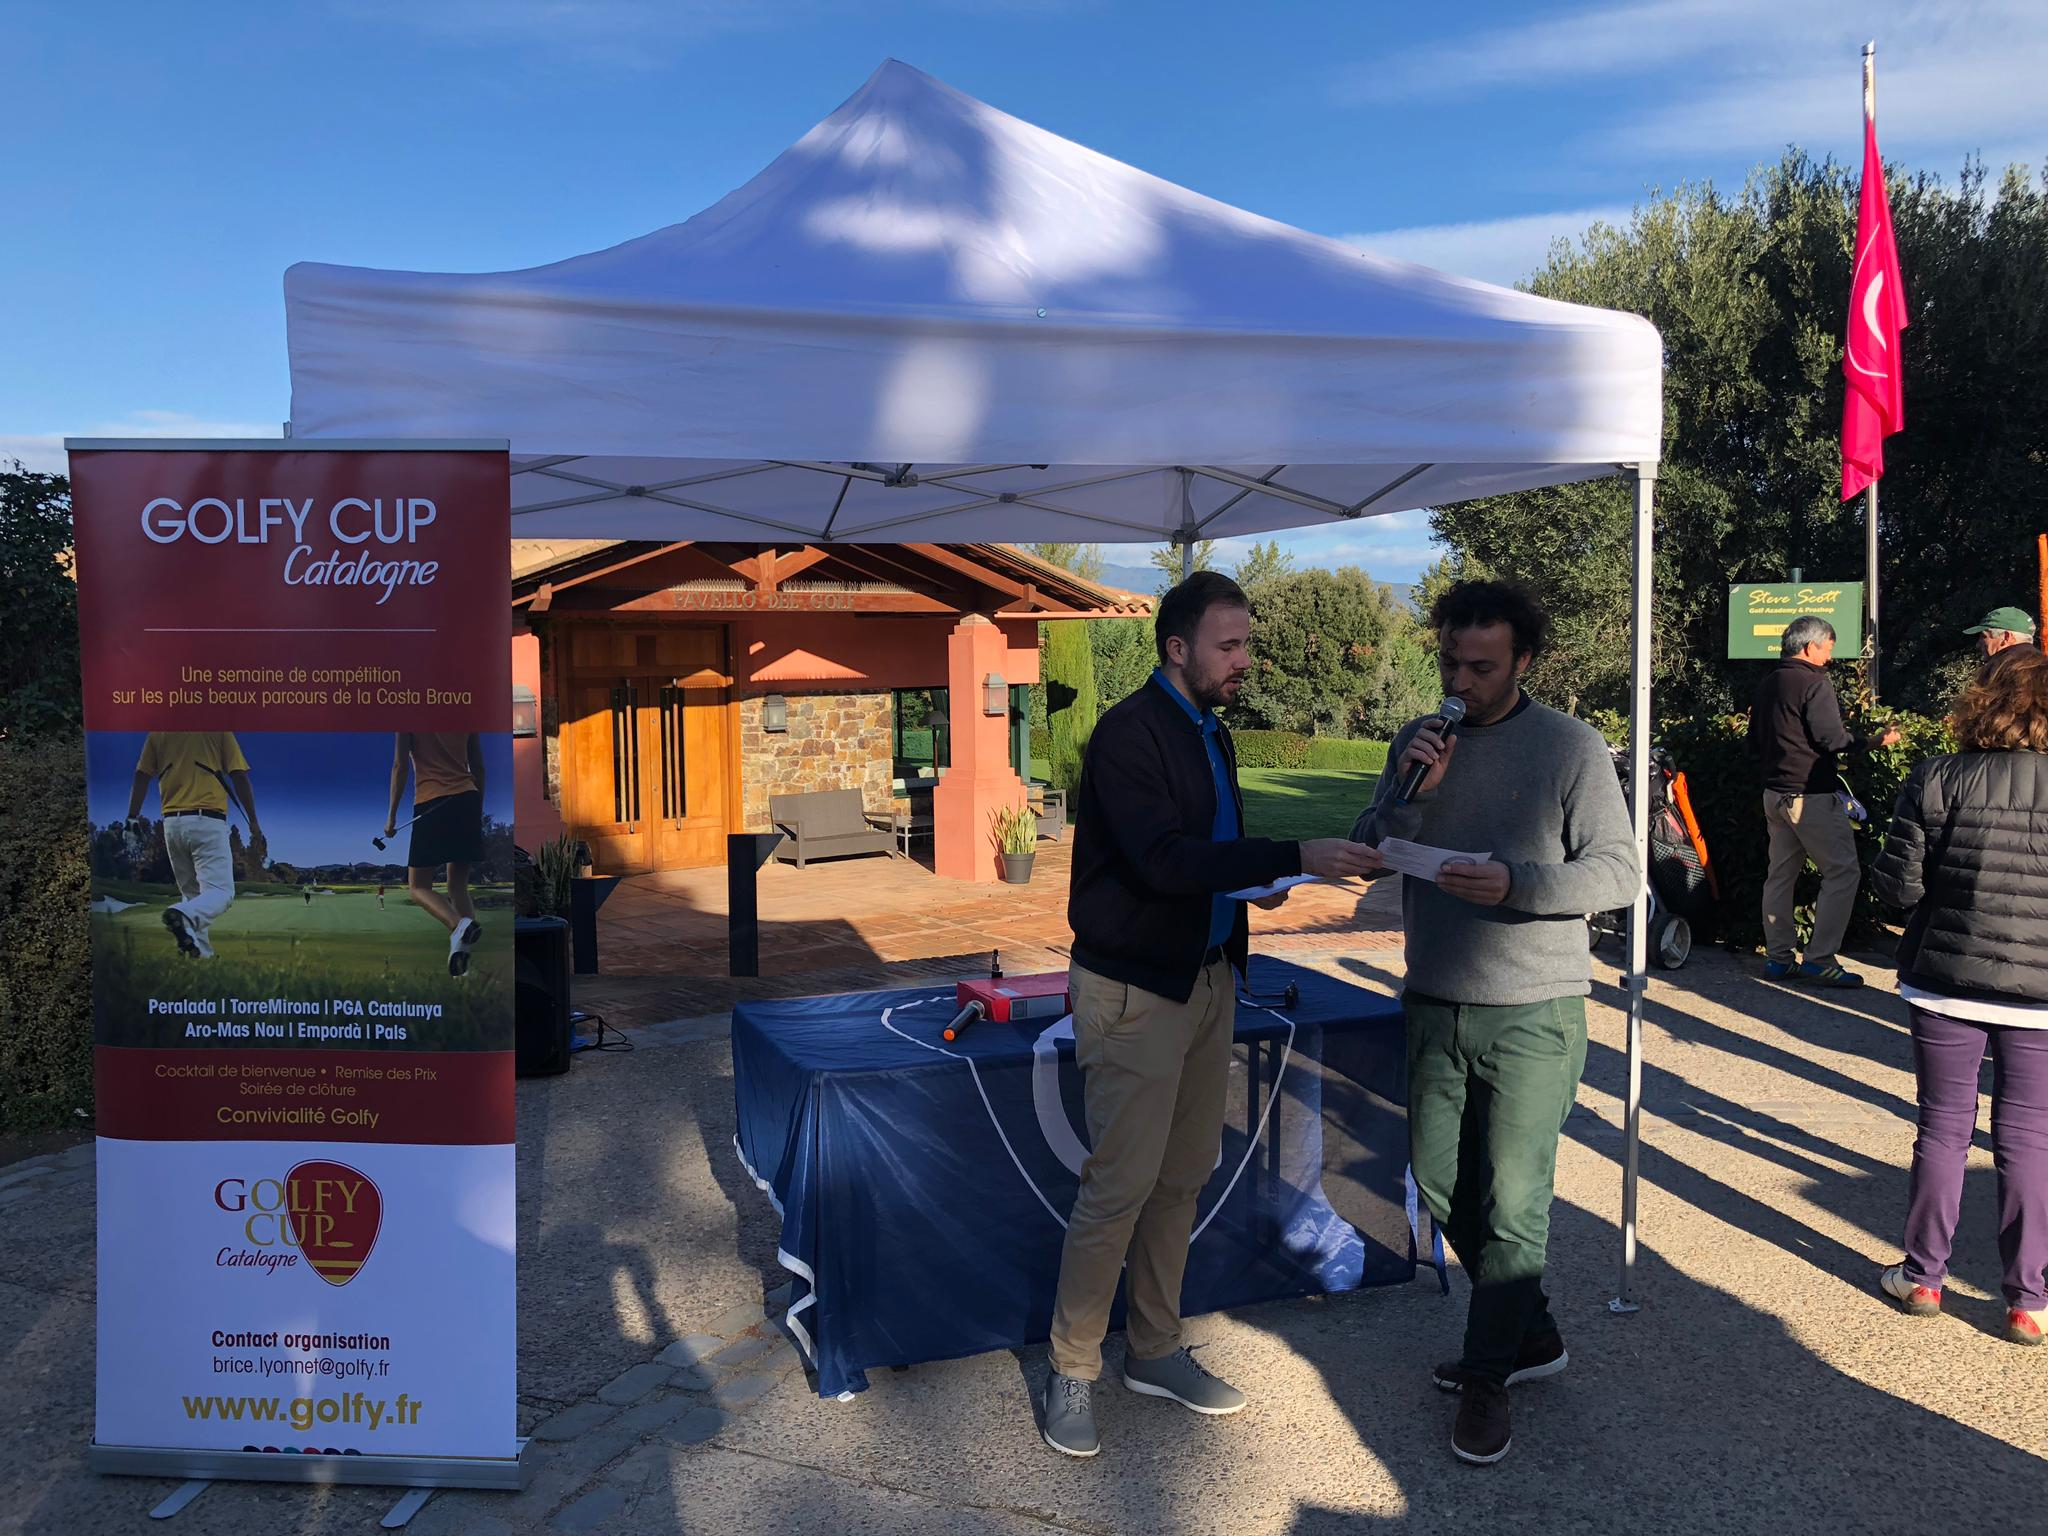 WhatsApp-Image-2019-11-07-at-17.57.33-1 Golfy Cup Catalogne 2019